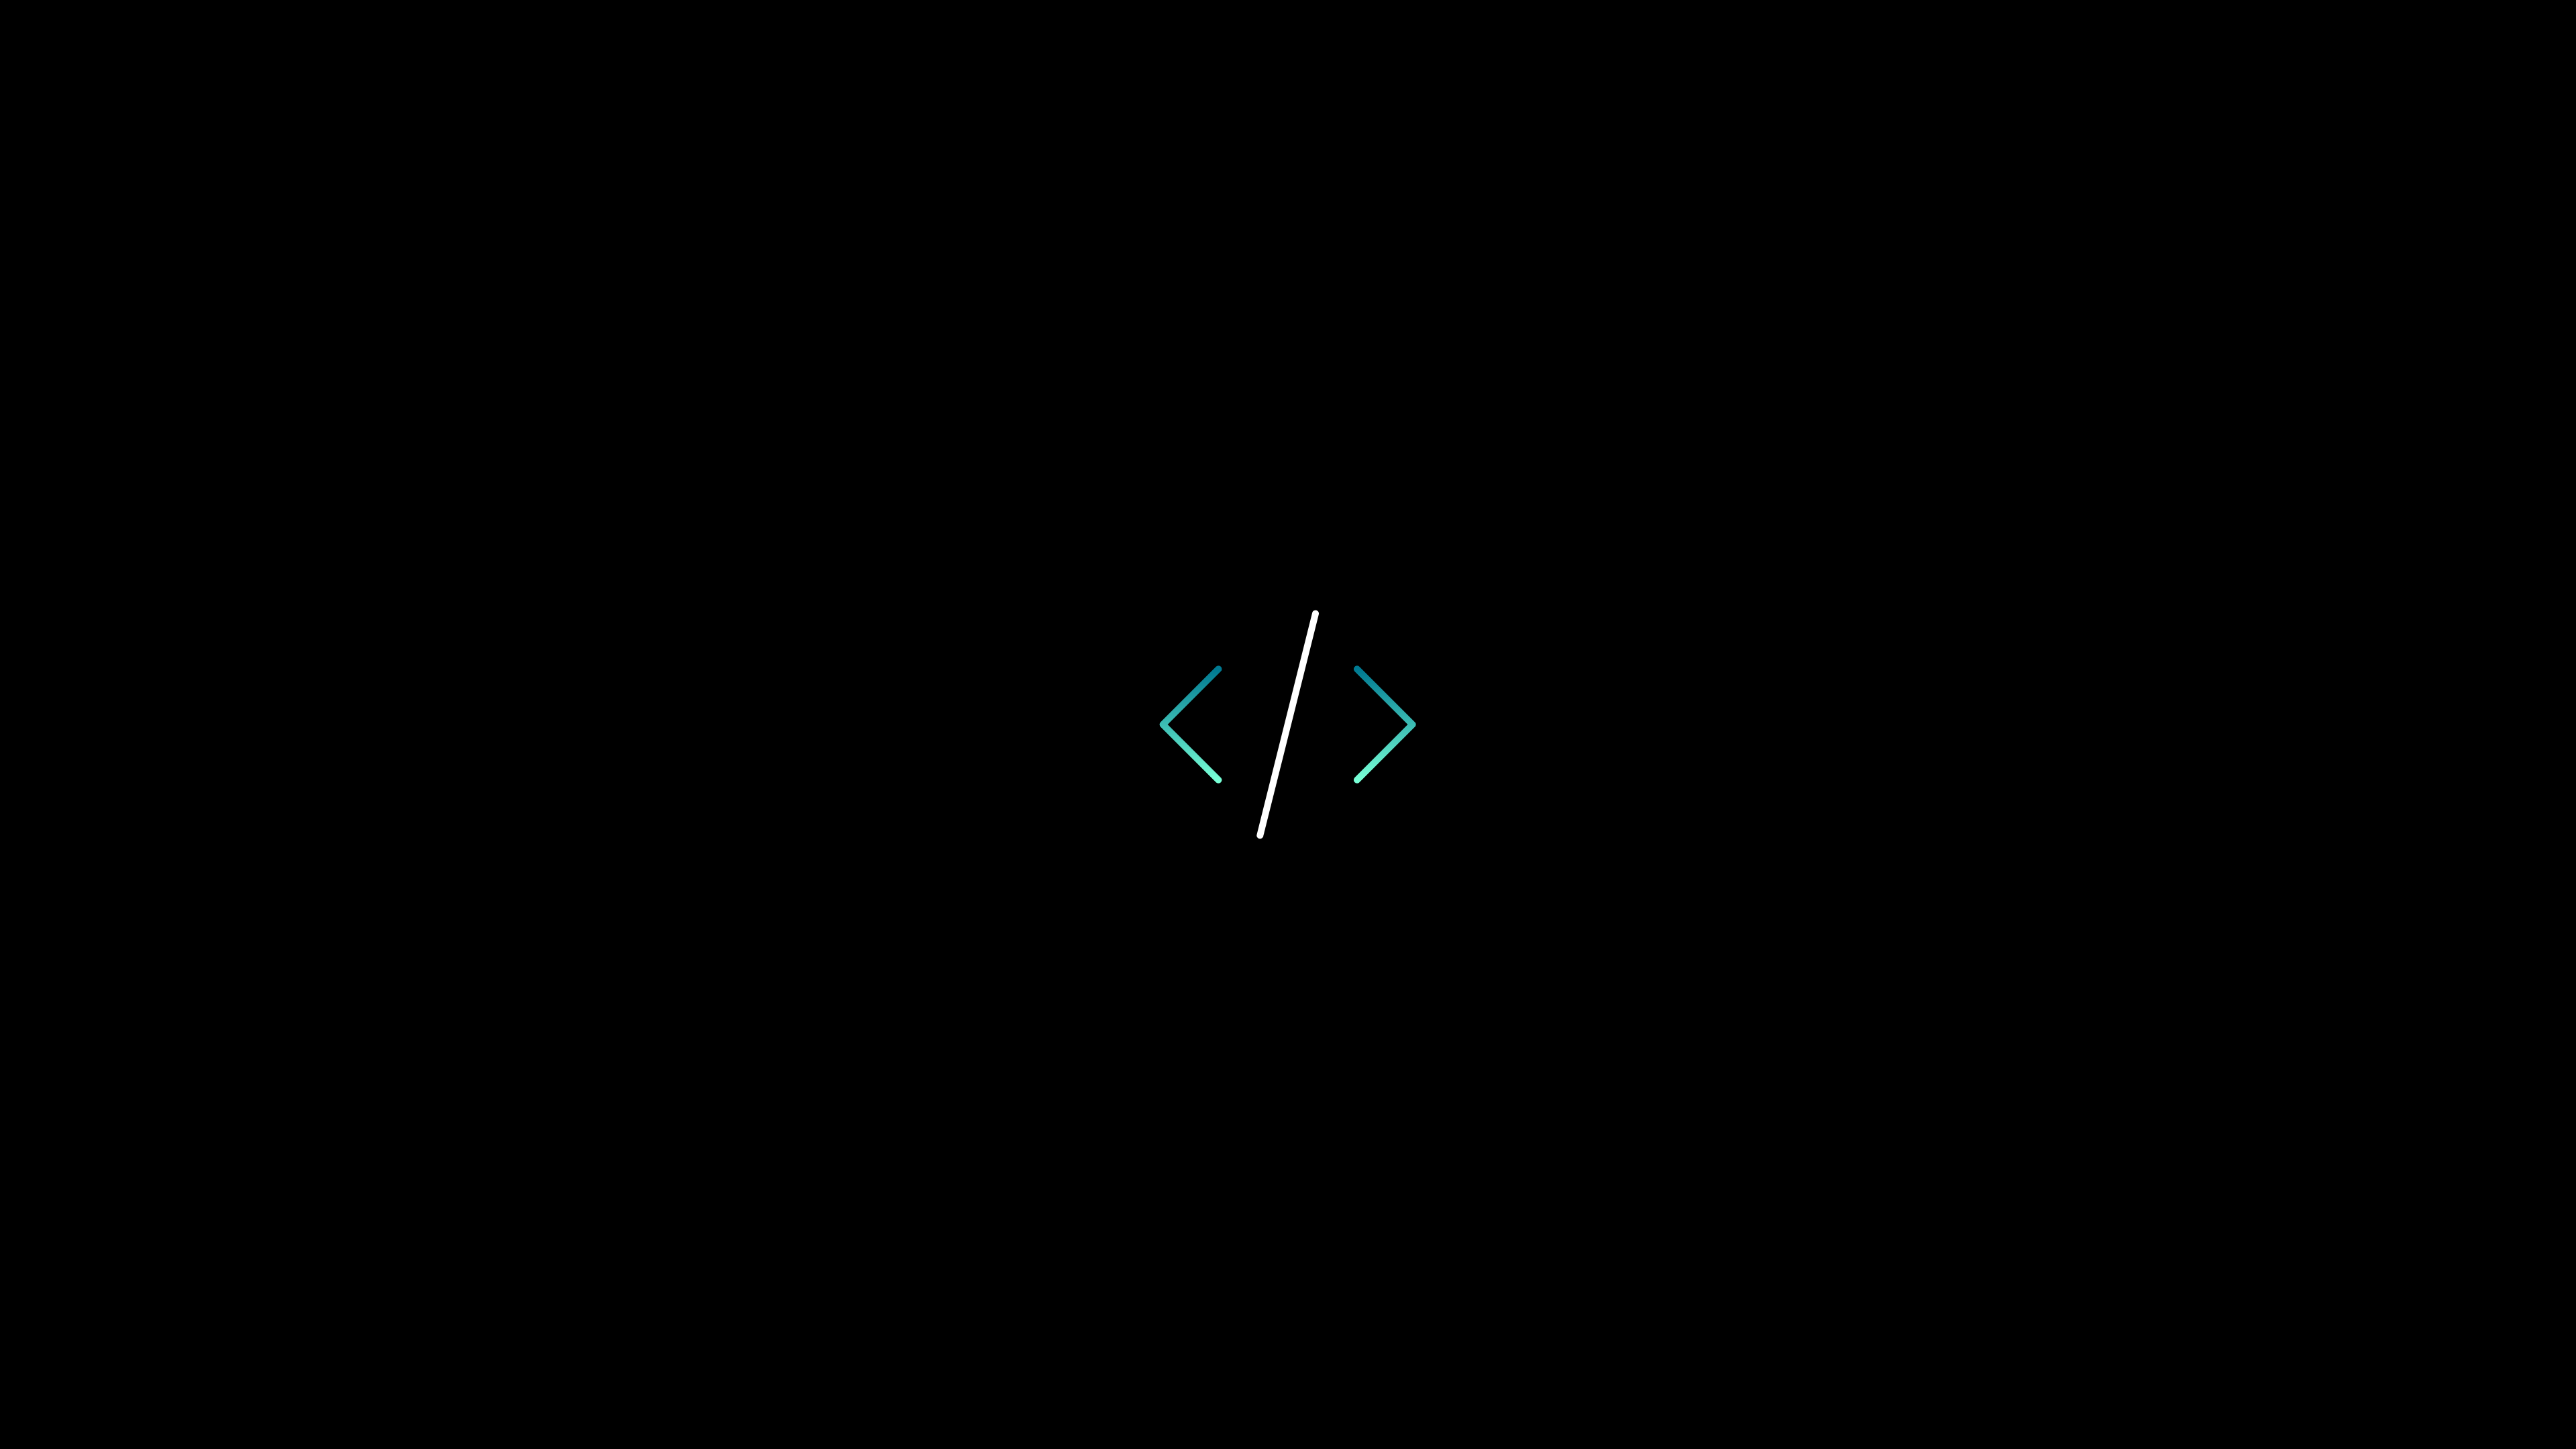 Minimal 4k Wallpapers For Your Desktop Or Mobile Screen Free And Easy To Download